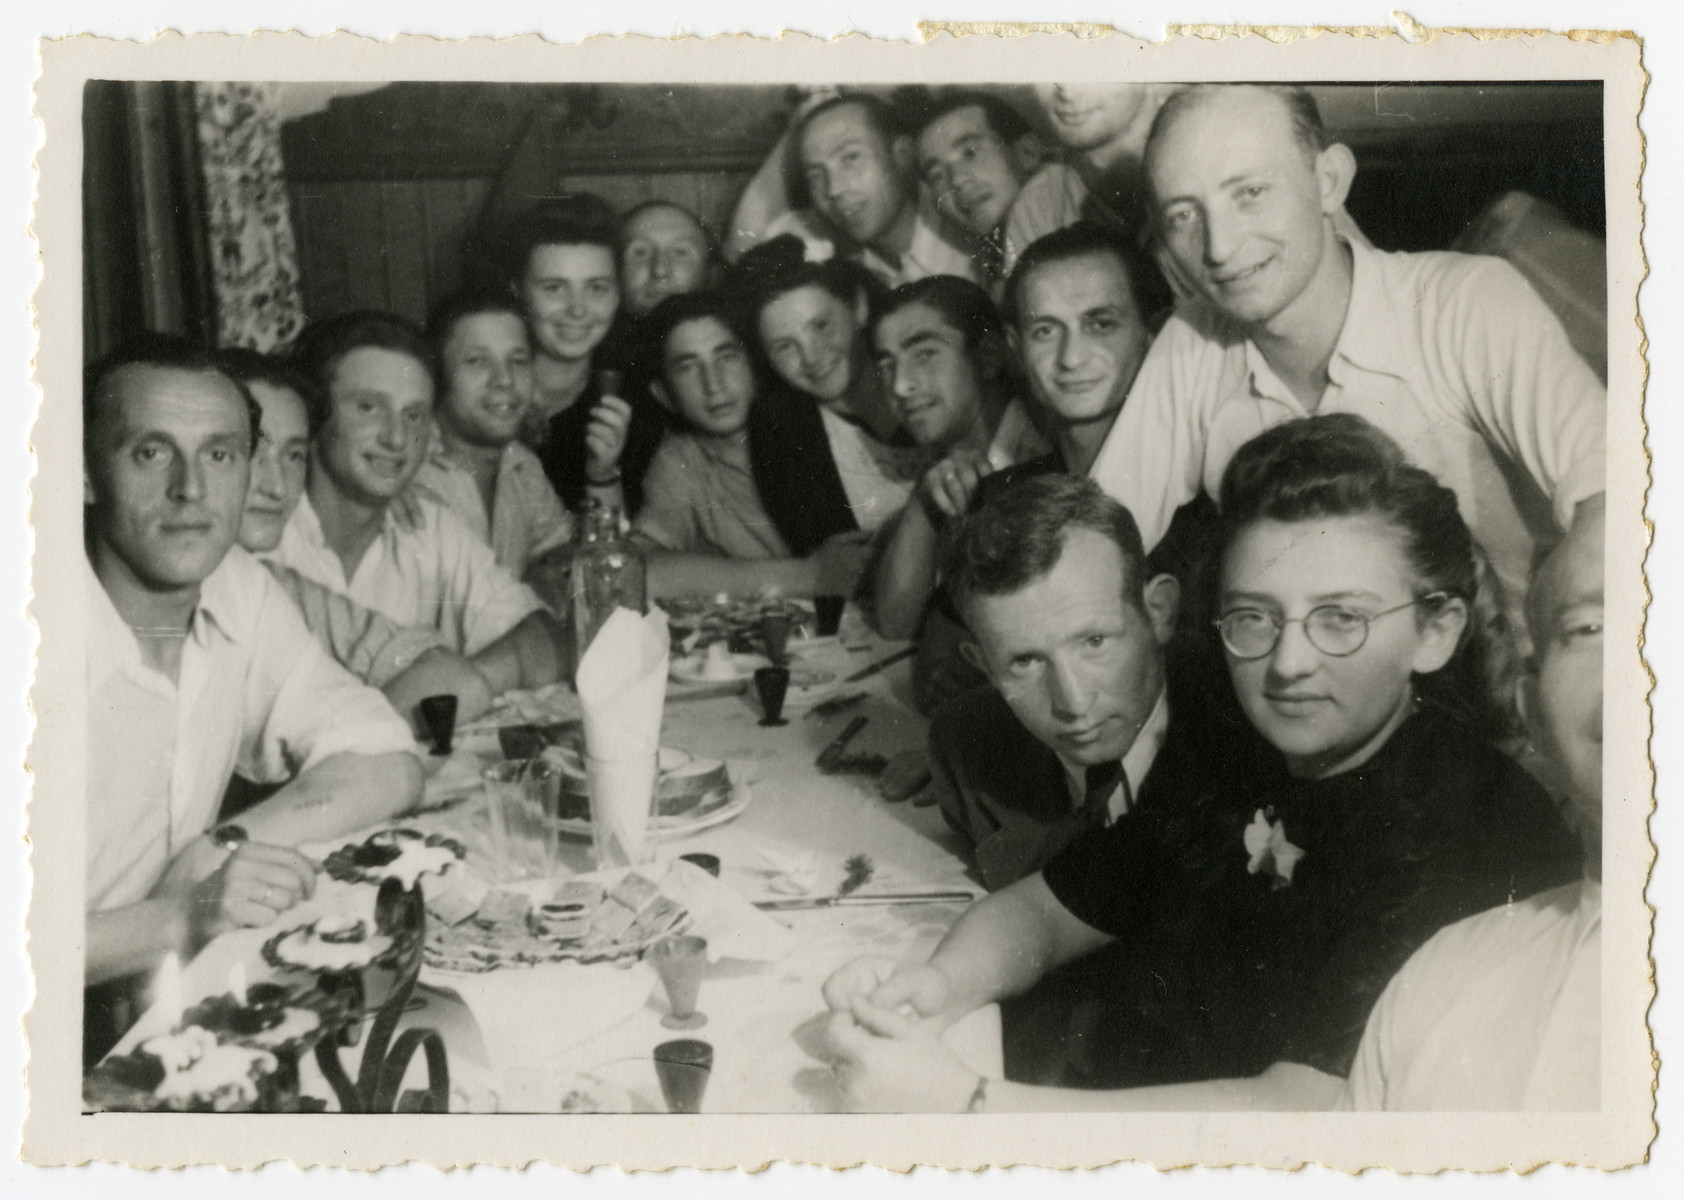 Jewish DPs gather for a celebration in the Landsberg camp.